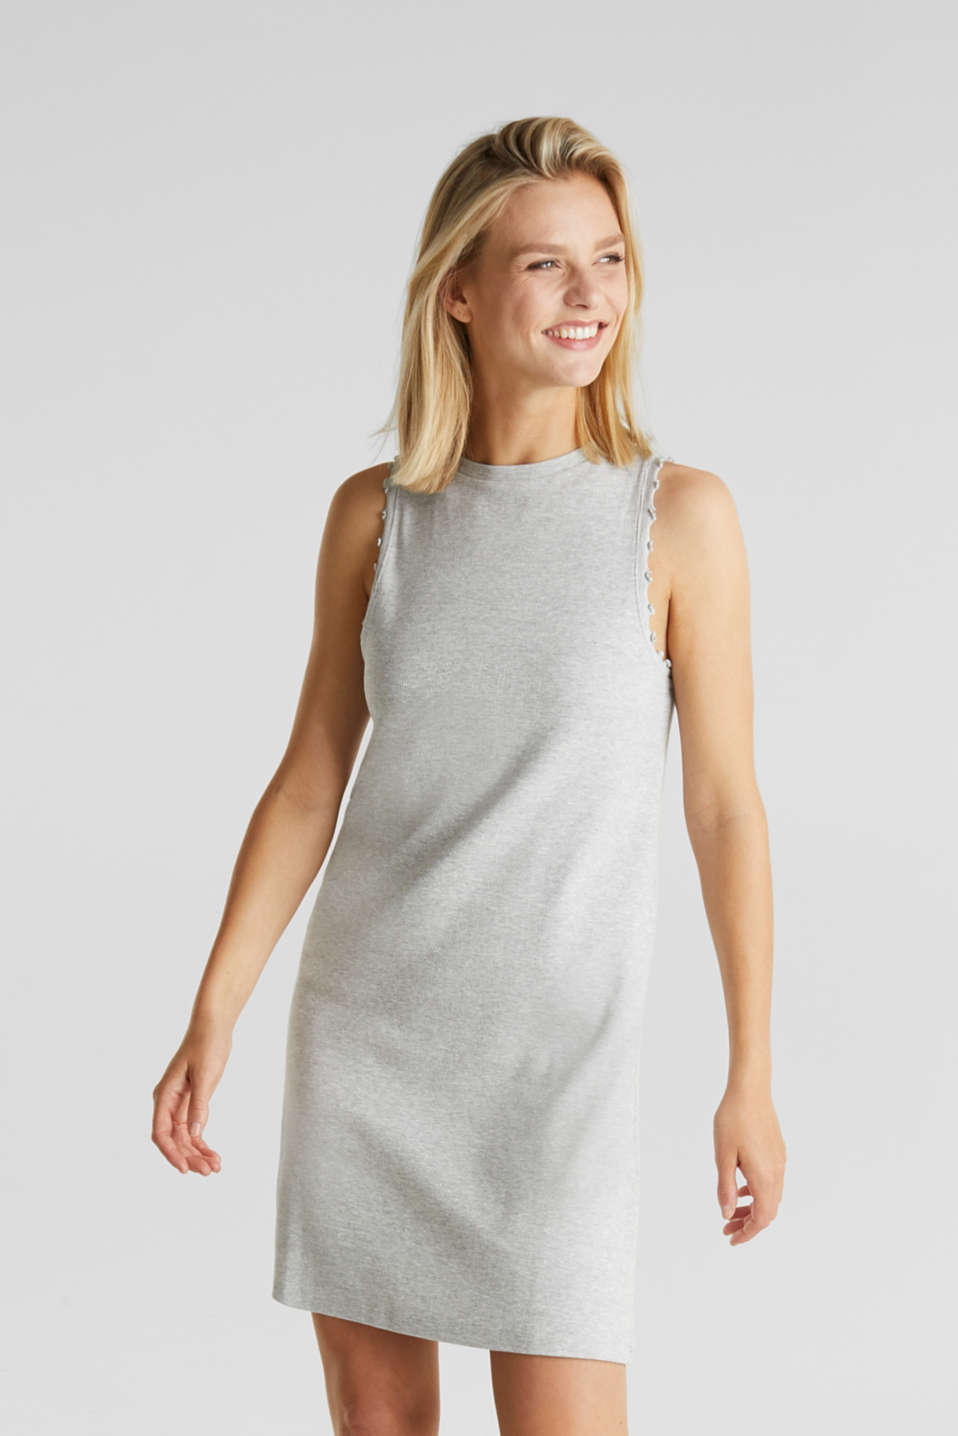 Ribbed jersey tank top dress, LIGHT GREY 5, detail image number 0